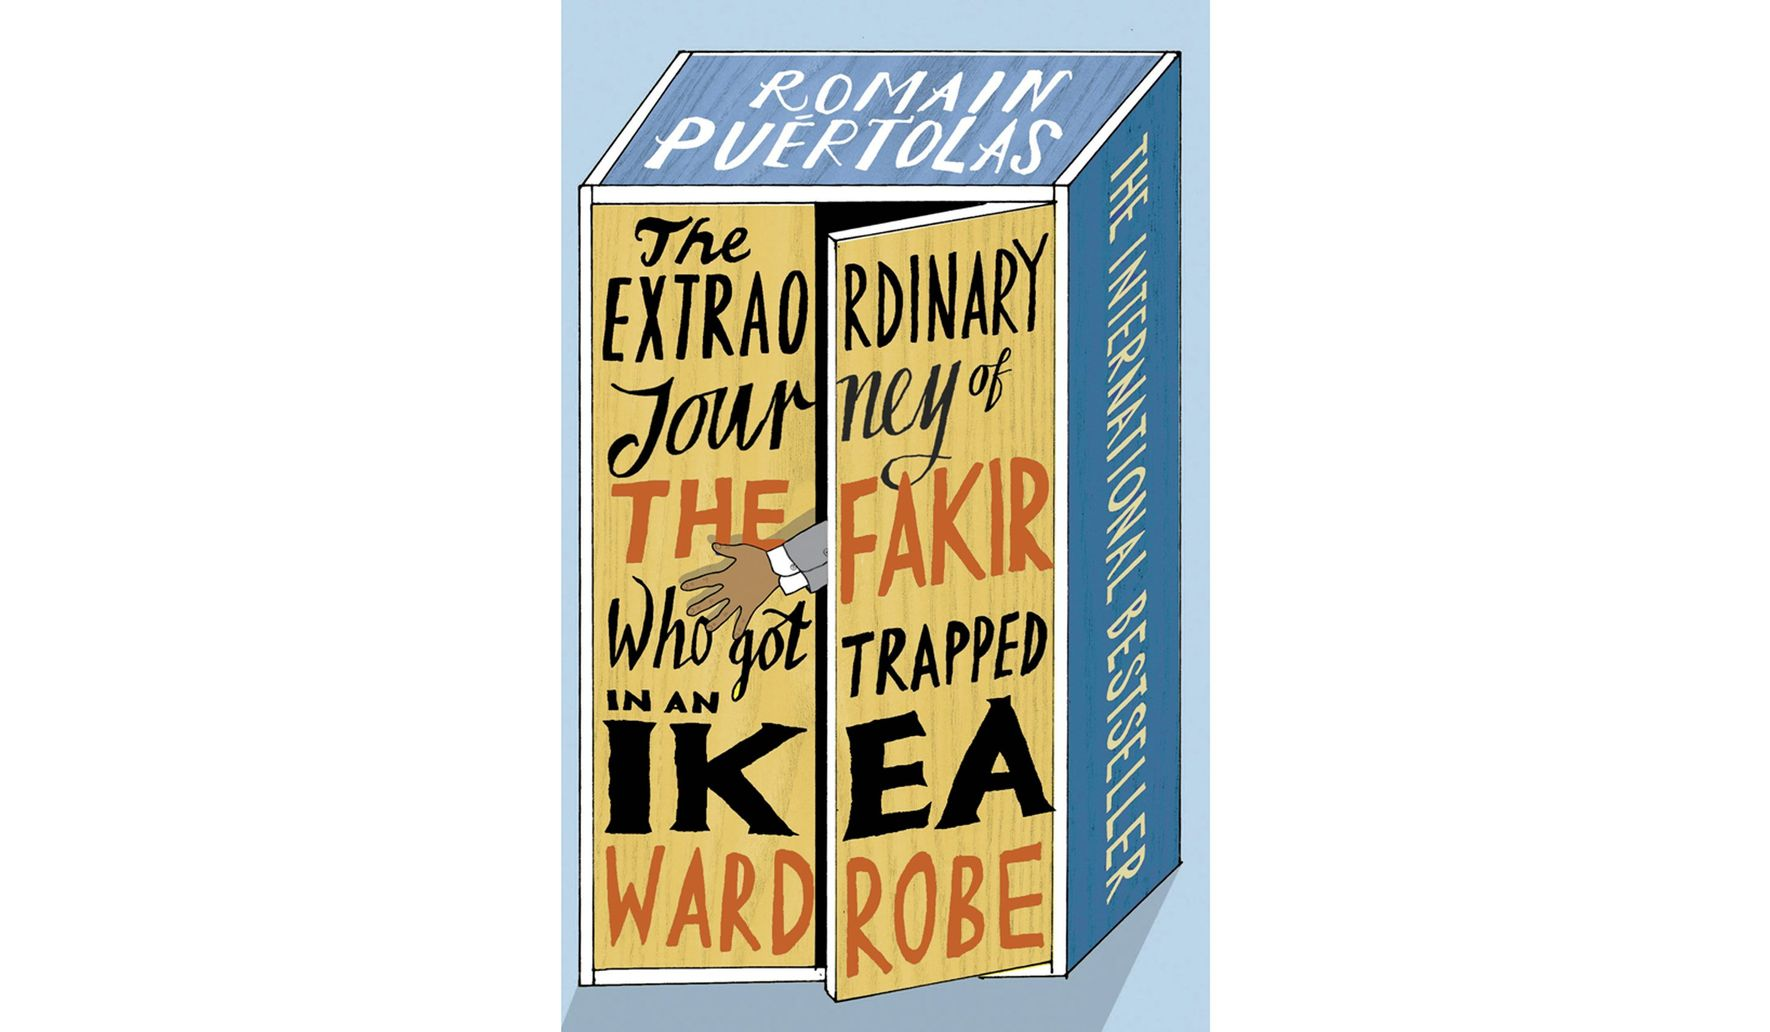 BOOK REVIEW: 'The Extraordinary Journey of the Fakir Who got